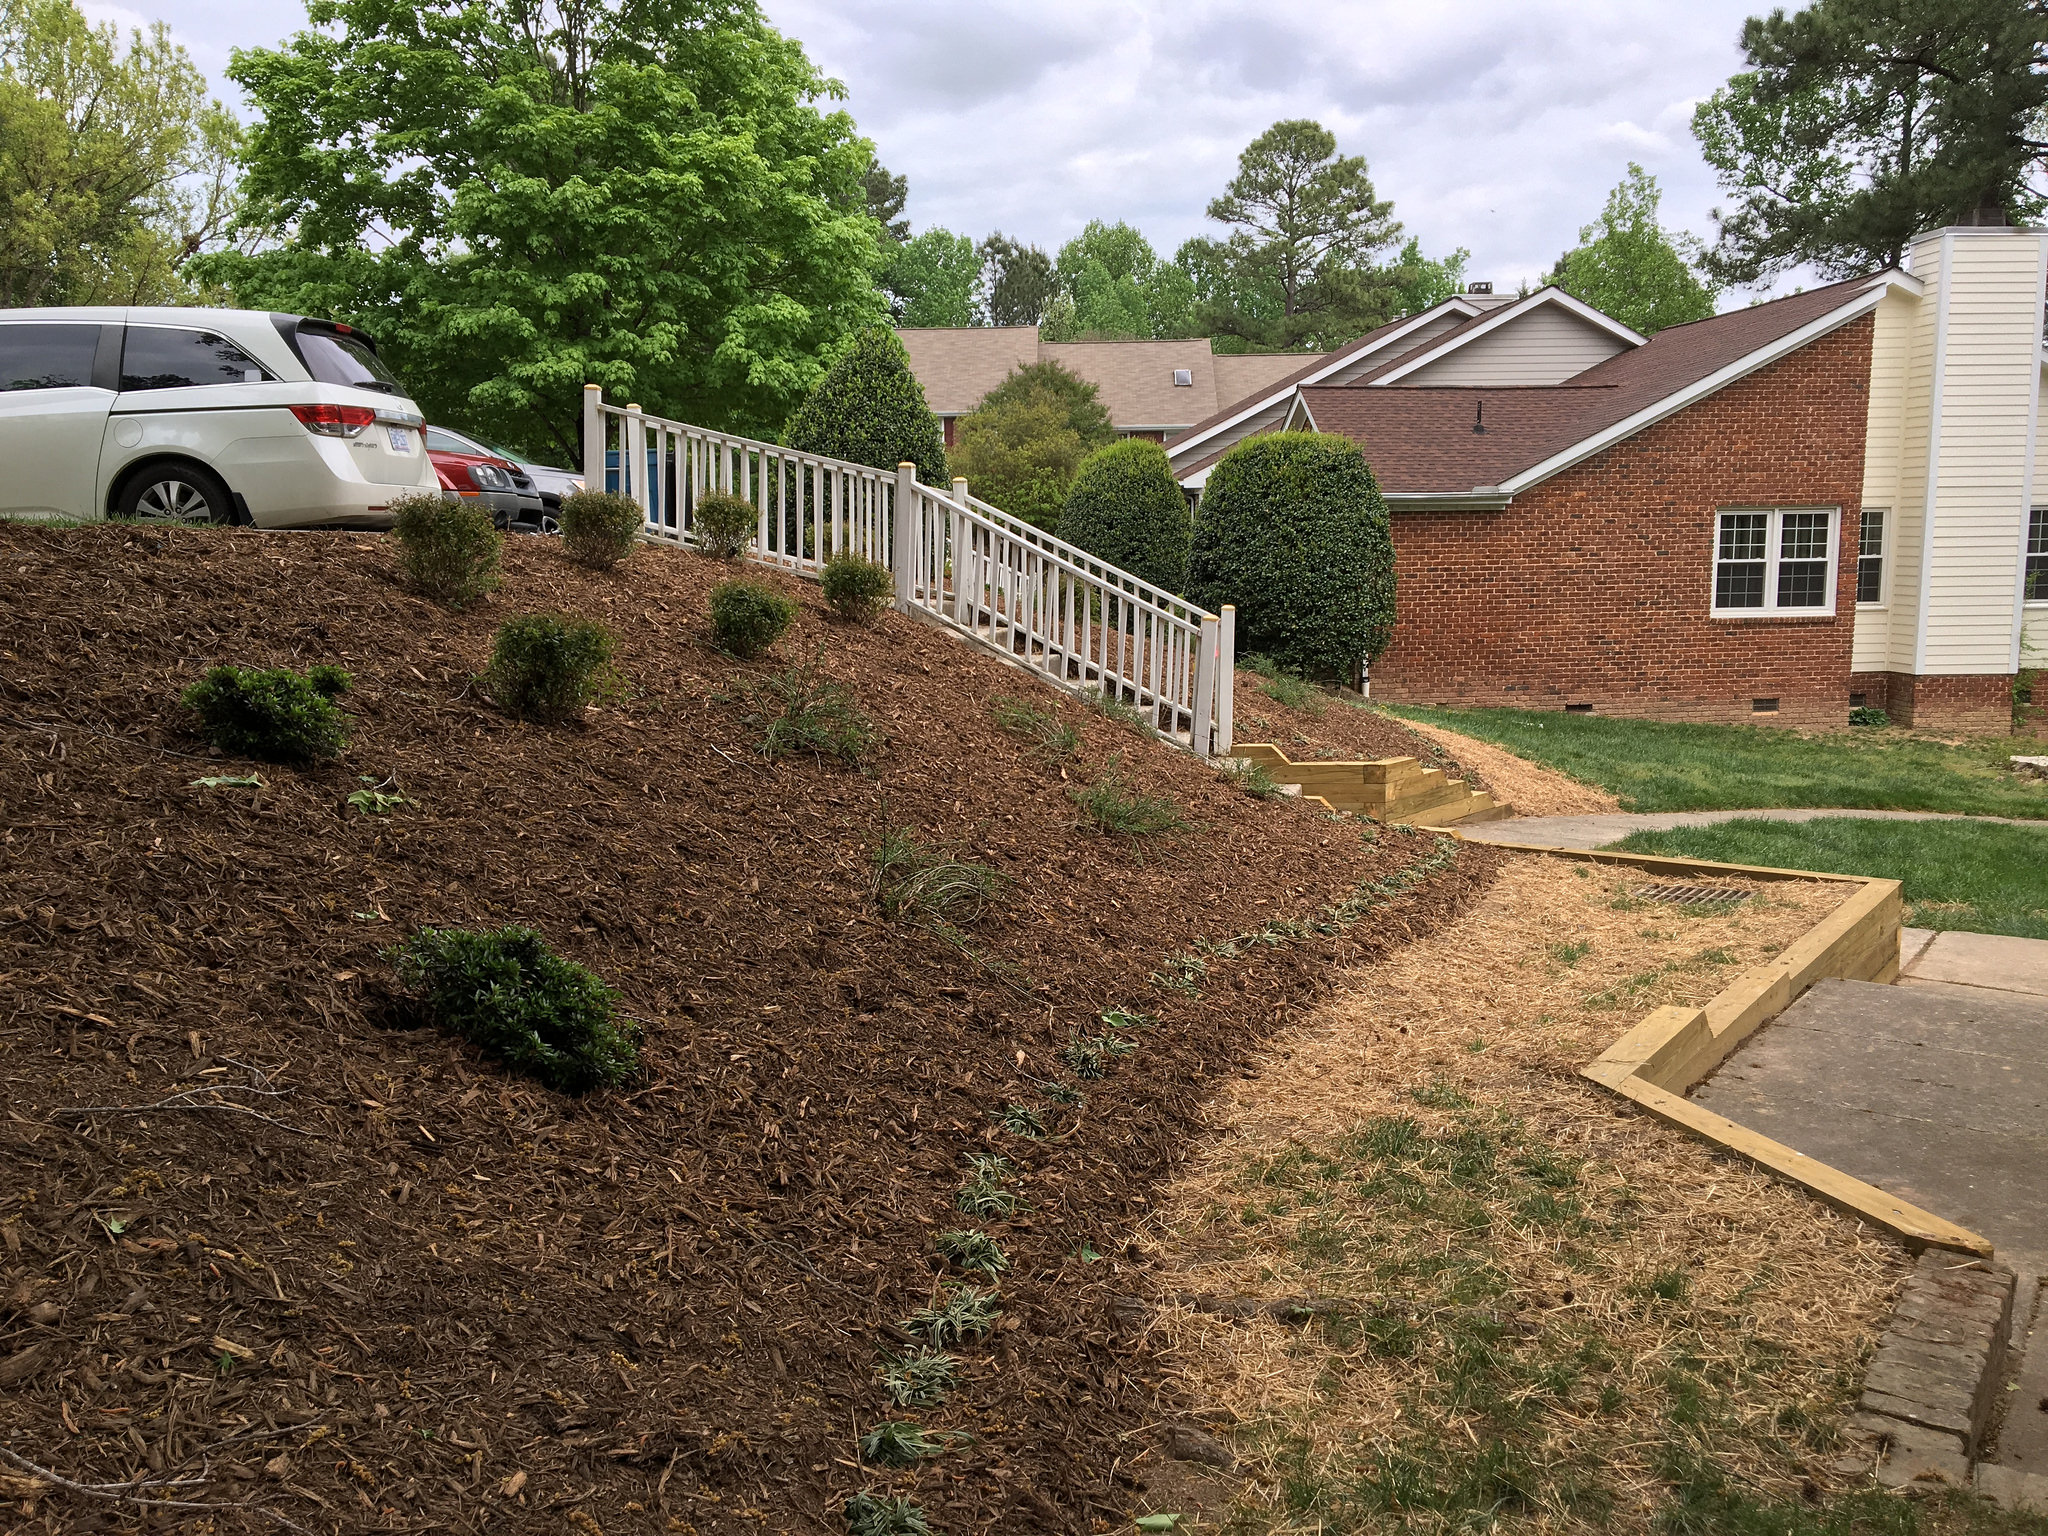 New plantings and grass coming up.